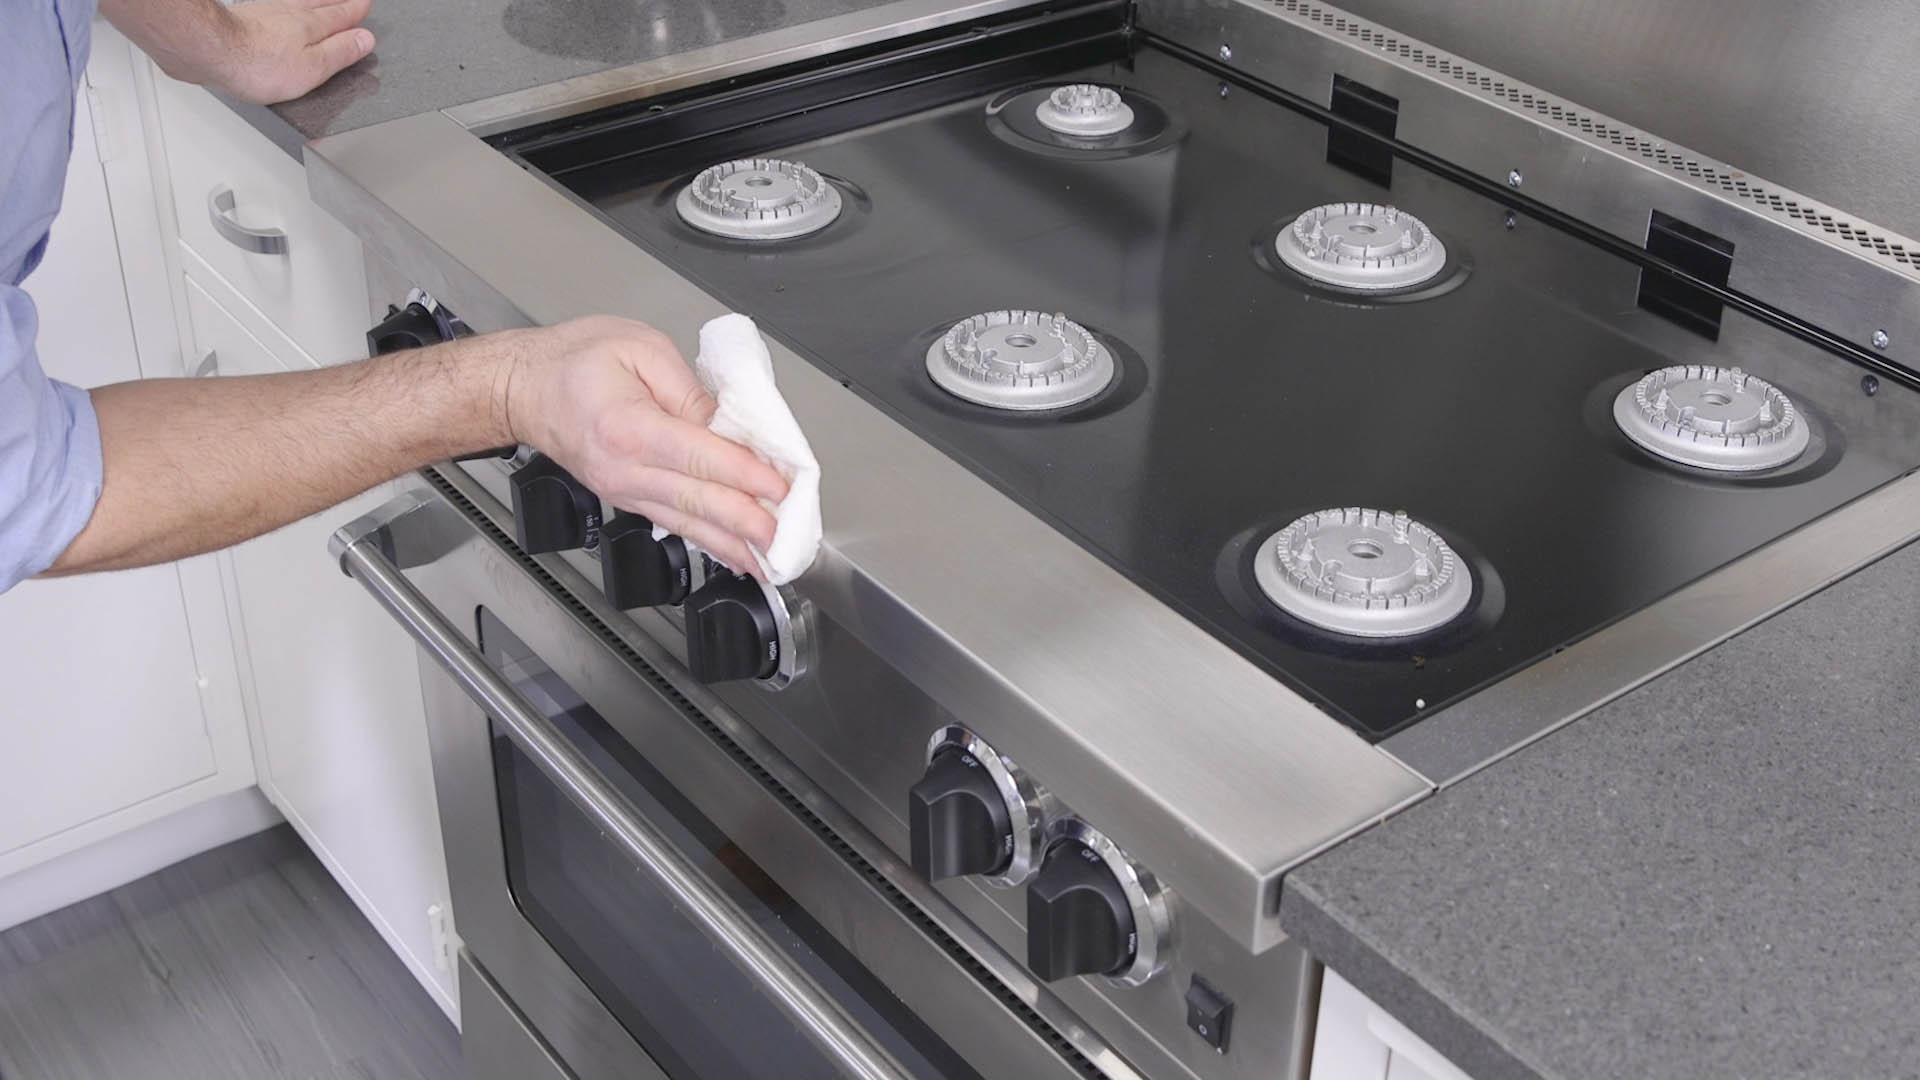 How To Clean And Maintain Stainless Steel Appliances And